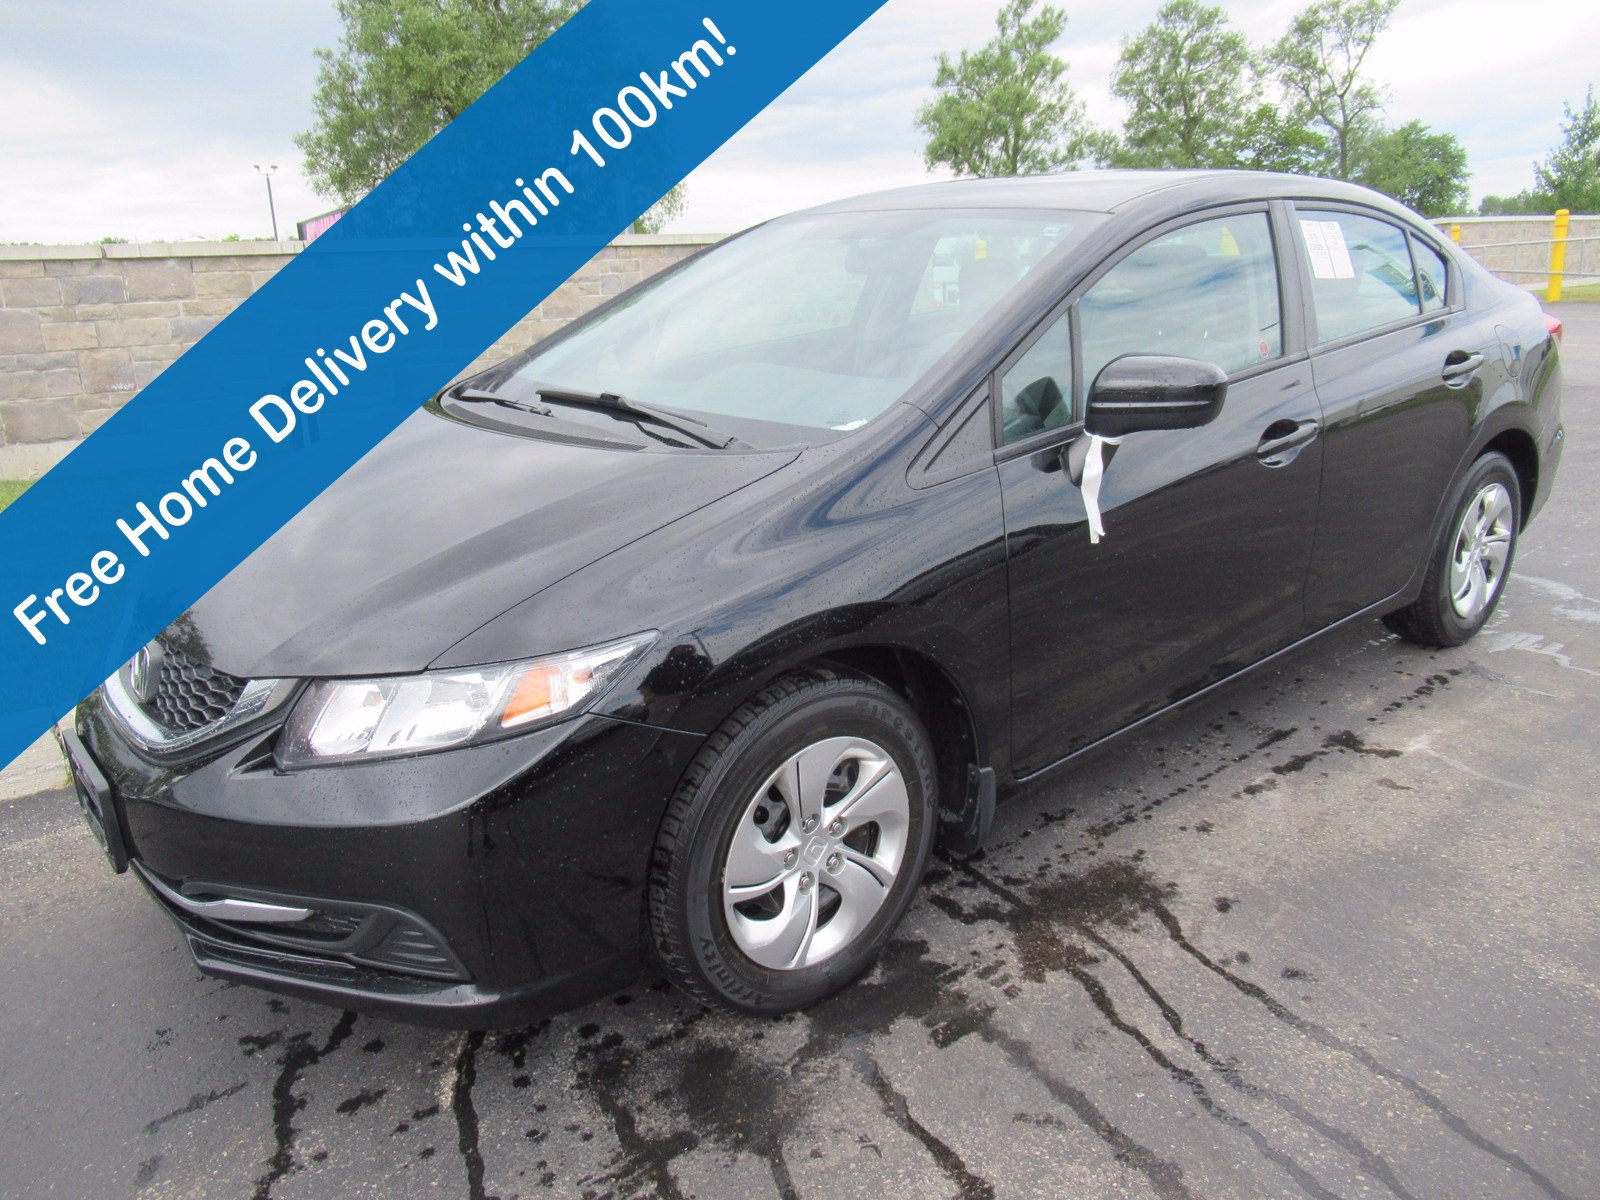 Certified Pre-Owned 2015 Honda Civic LX, Bluetooth, Heated Seats, Cruise Control, Power Package, A/C and more!